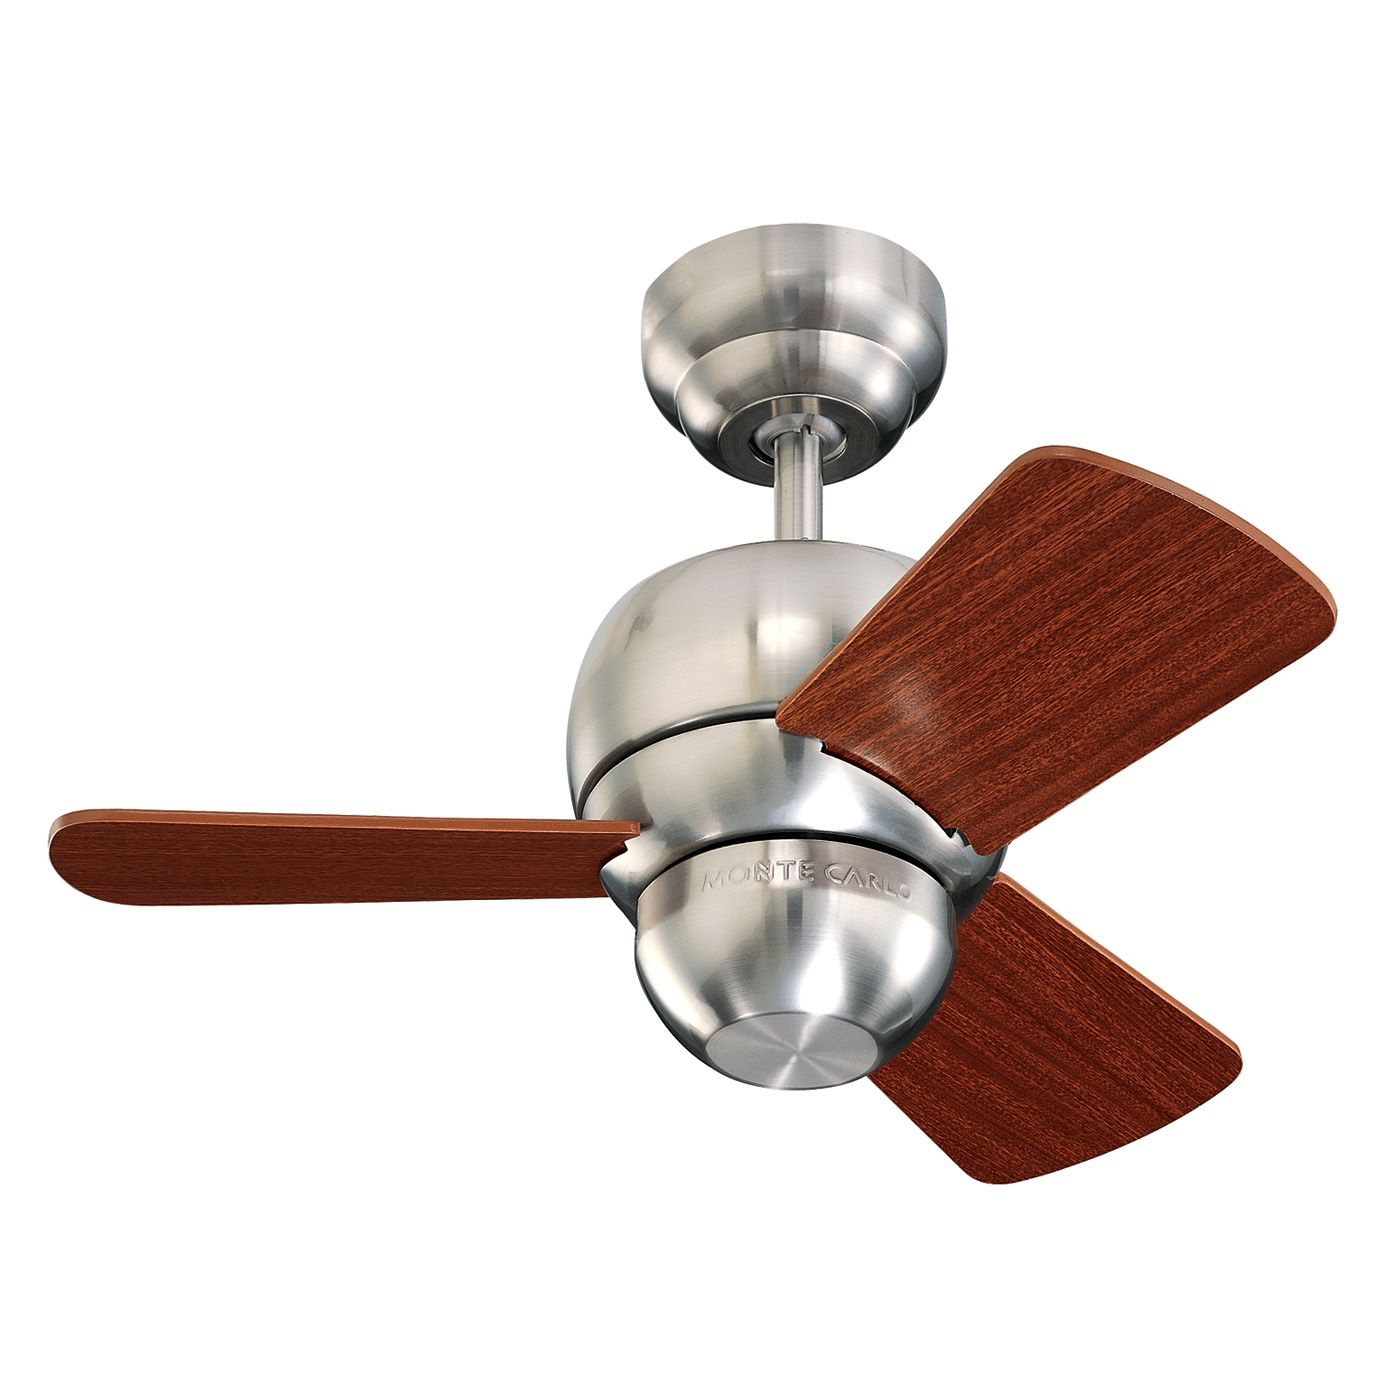 Shop Monte Carlo Fan pany 3TF24 24 in Micro Ceiling Fan at ATG